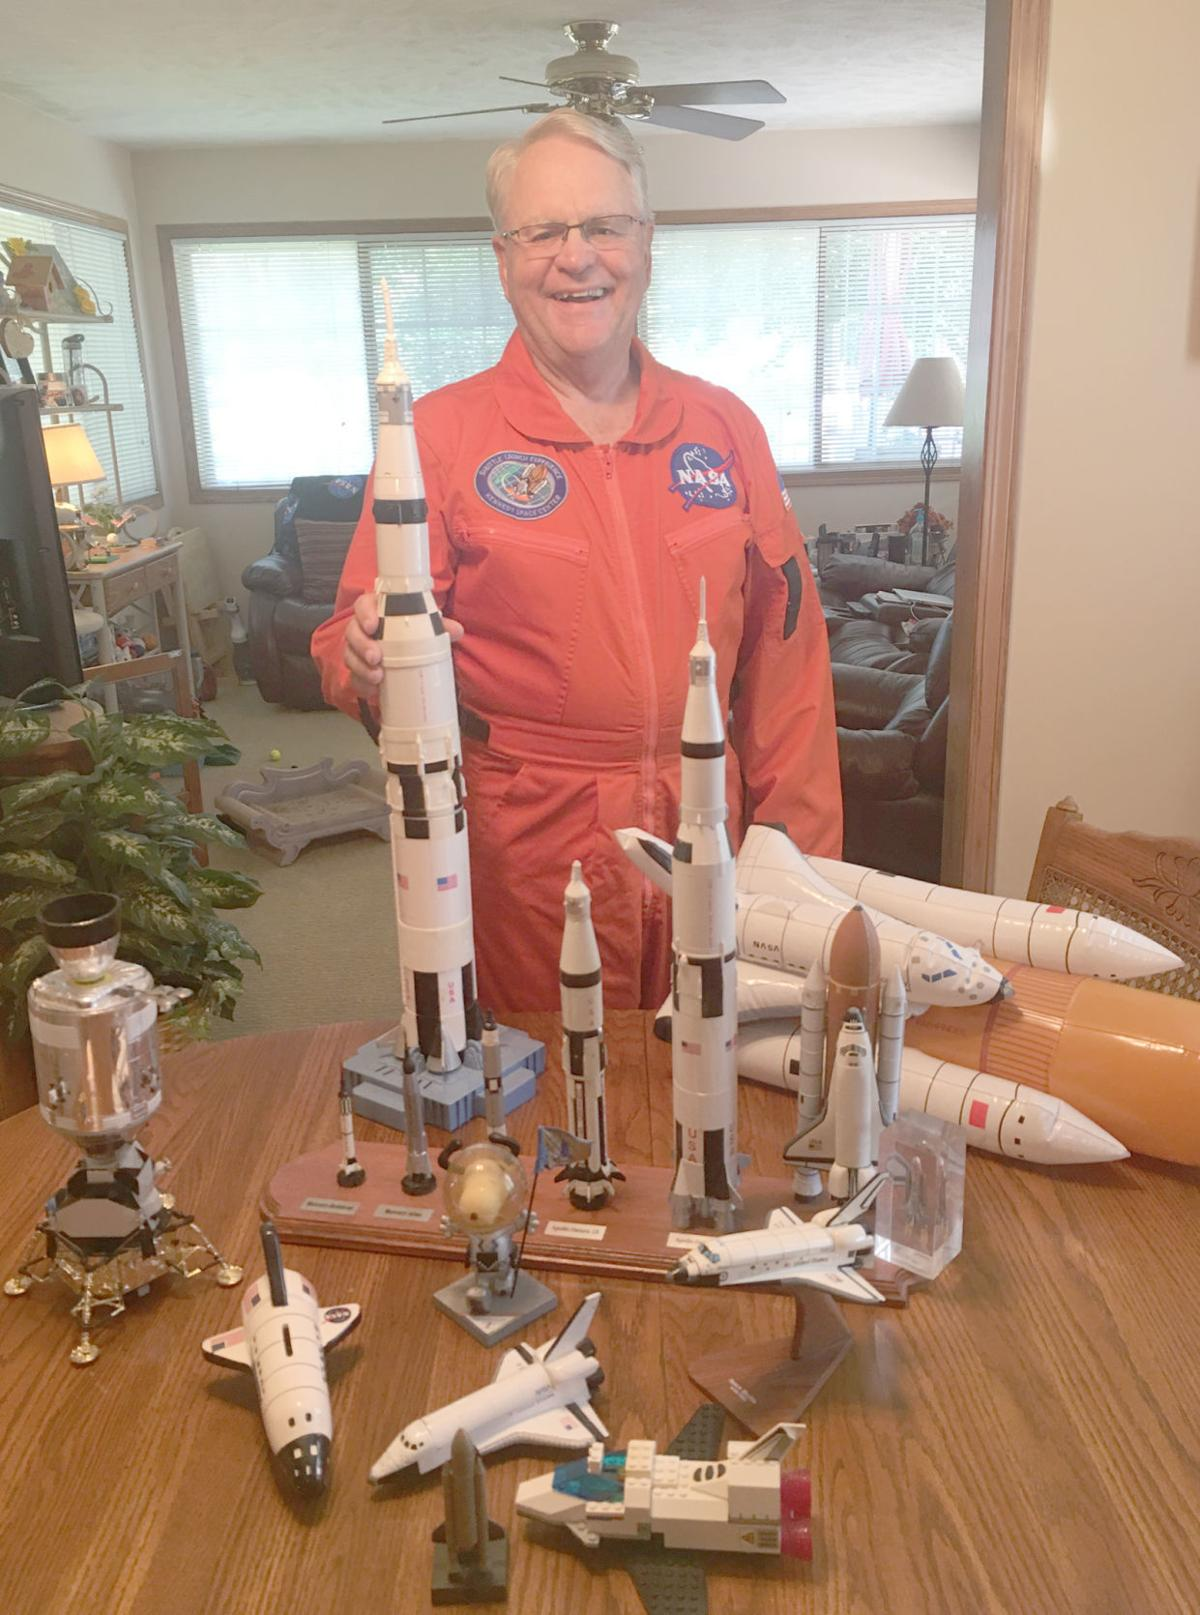 Man with models of spacecraft